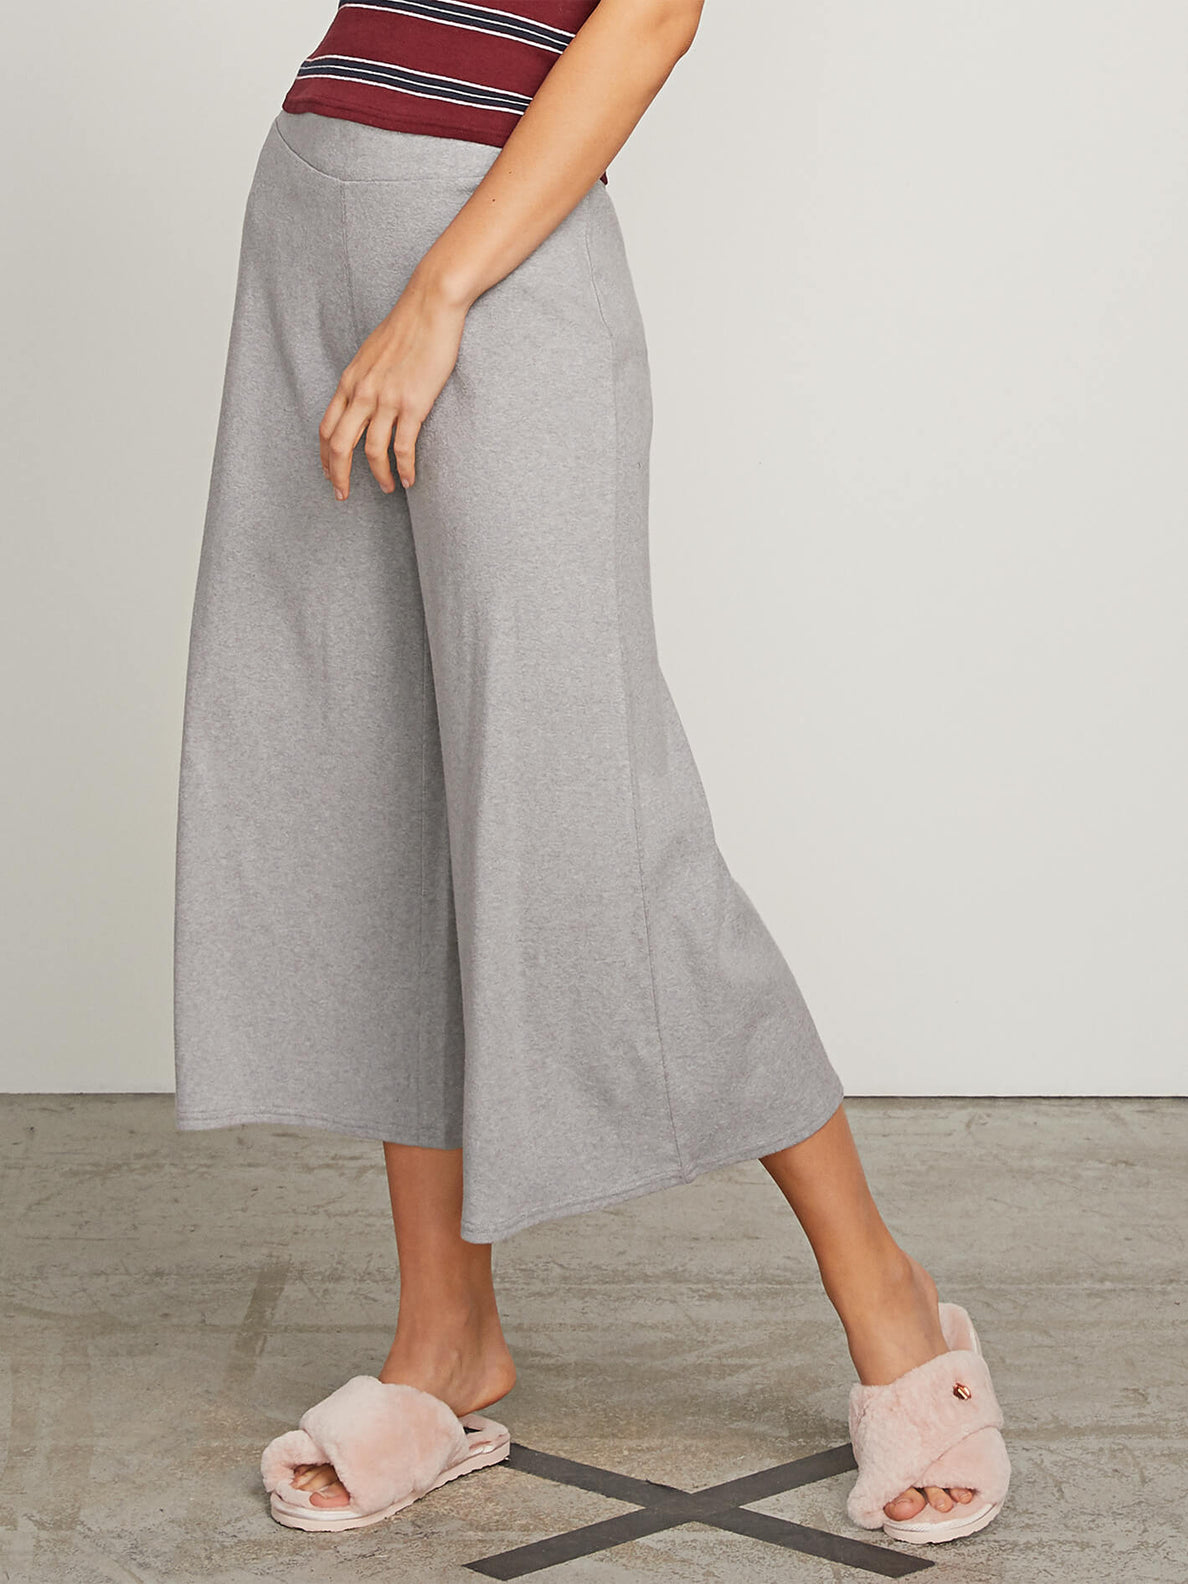 Lived In Lounge Pants In Heather Grey, Second Alternate View